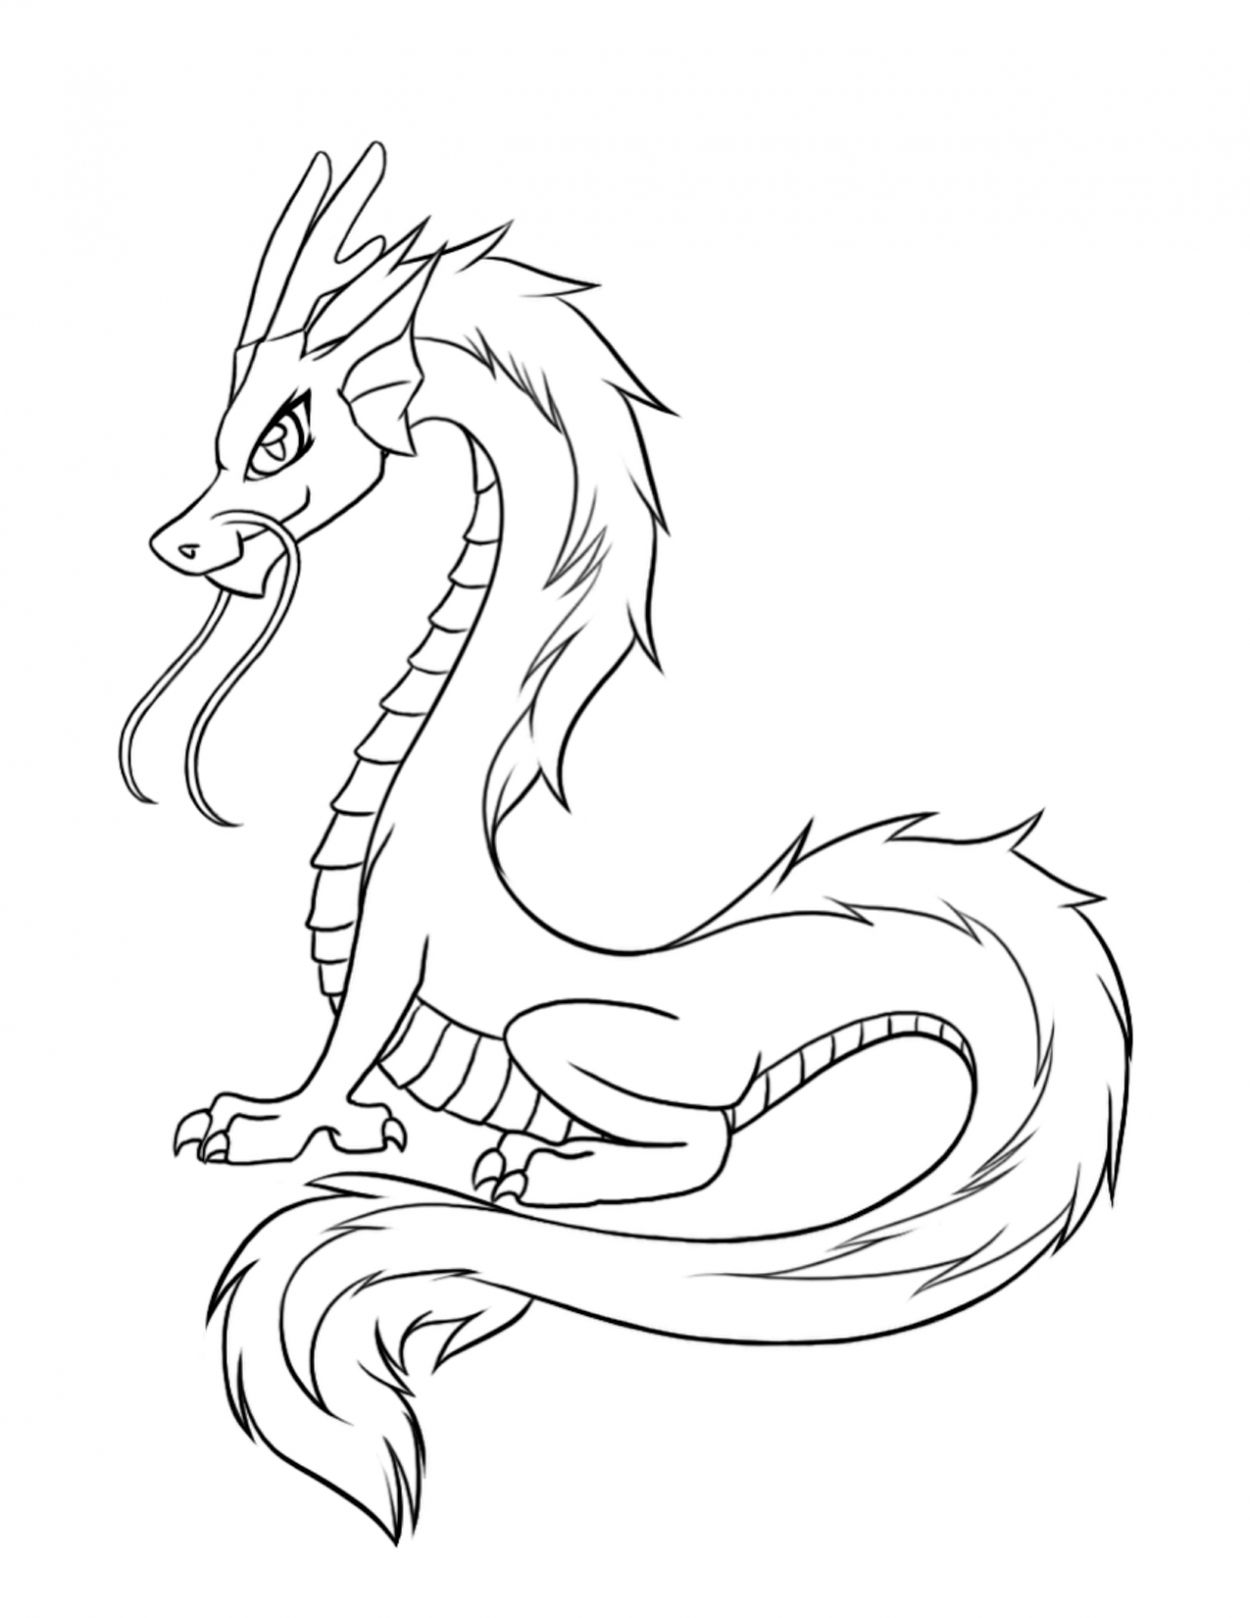 chinese dragon coloring free printable chinese dragon coloring pages for kids coloring dragon chinese 1 2